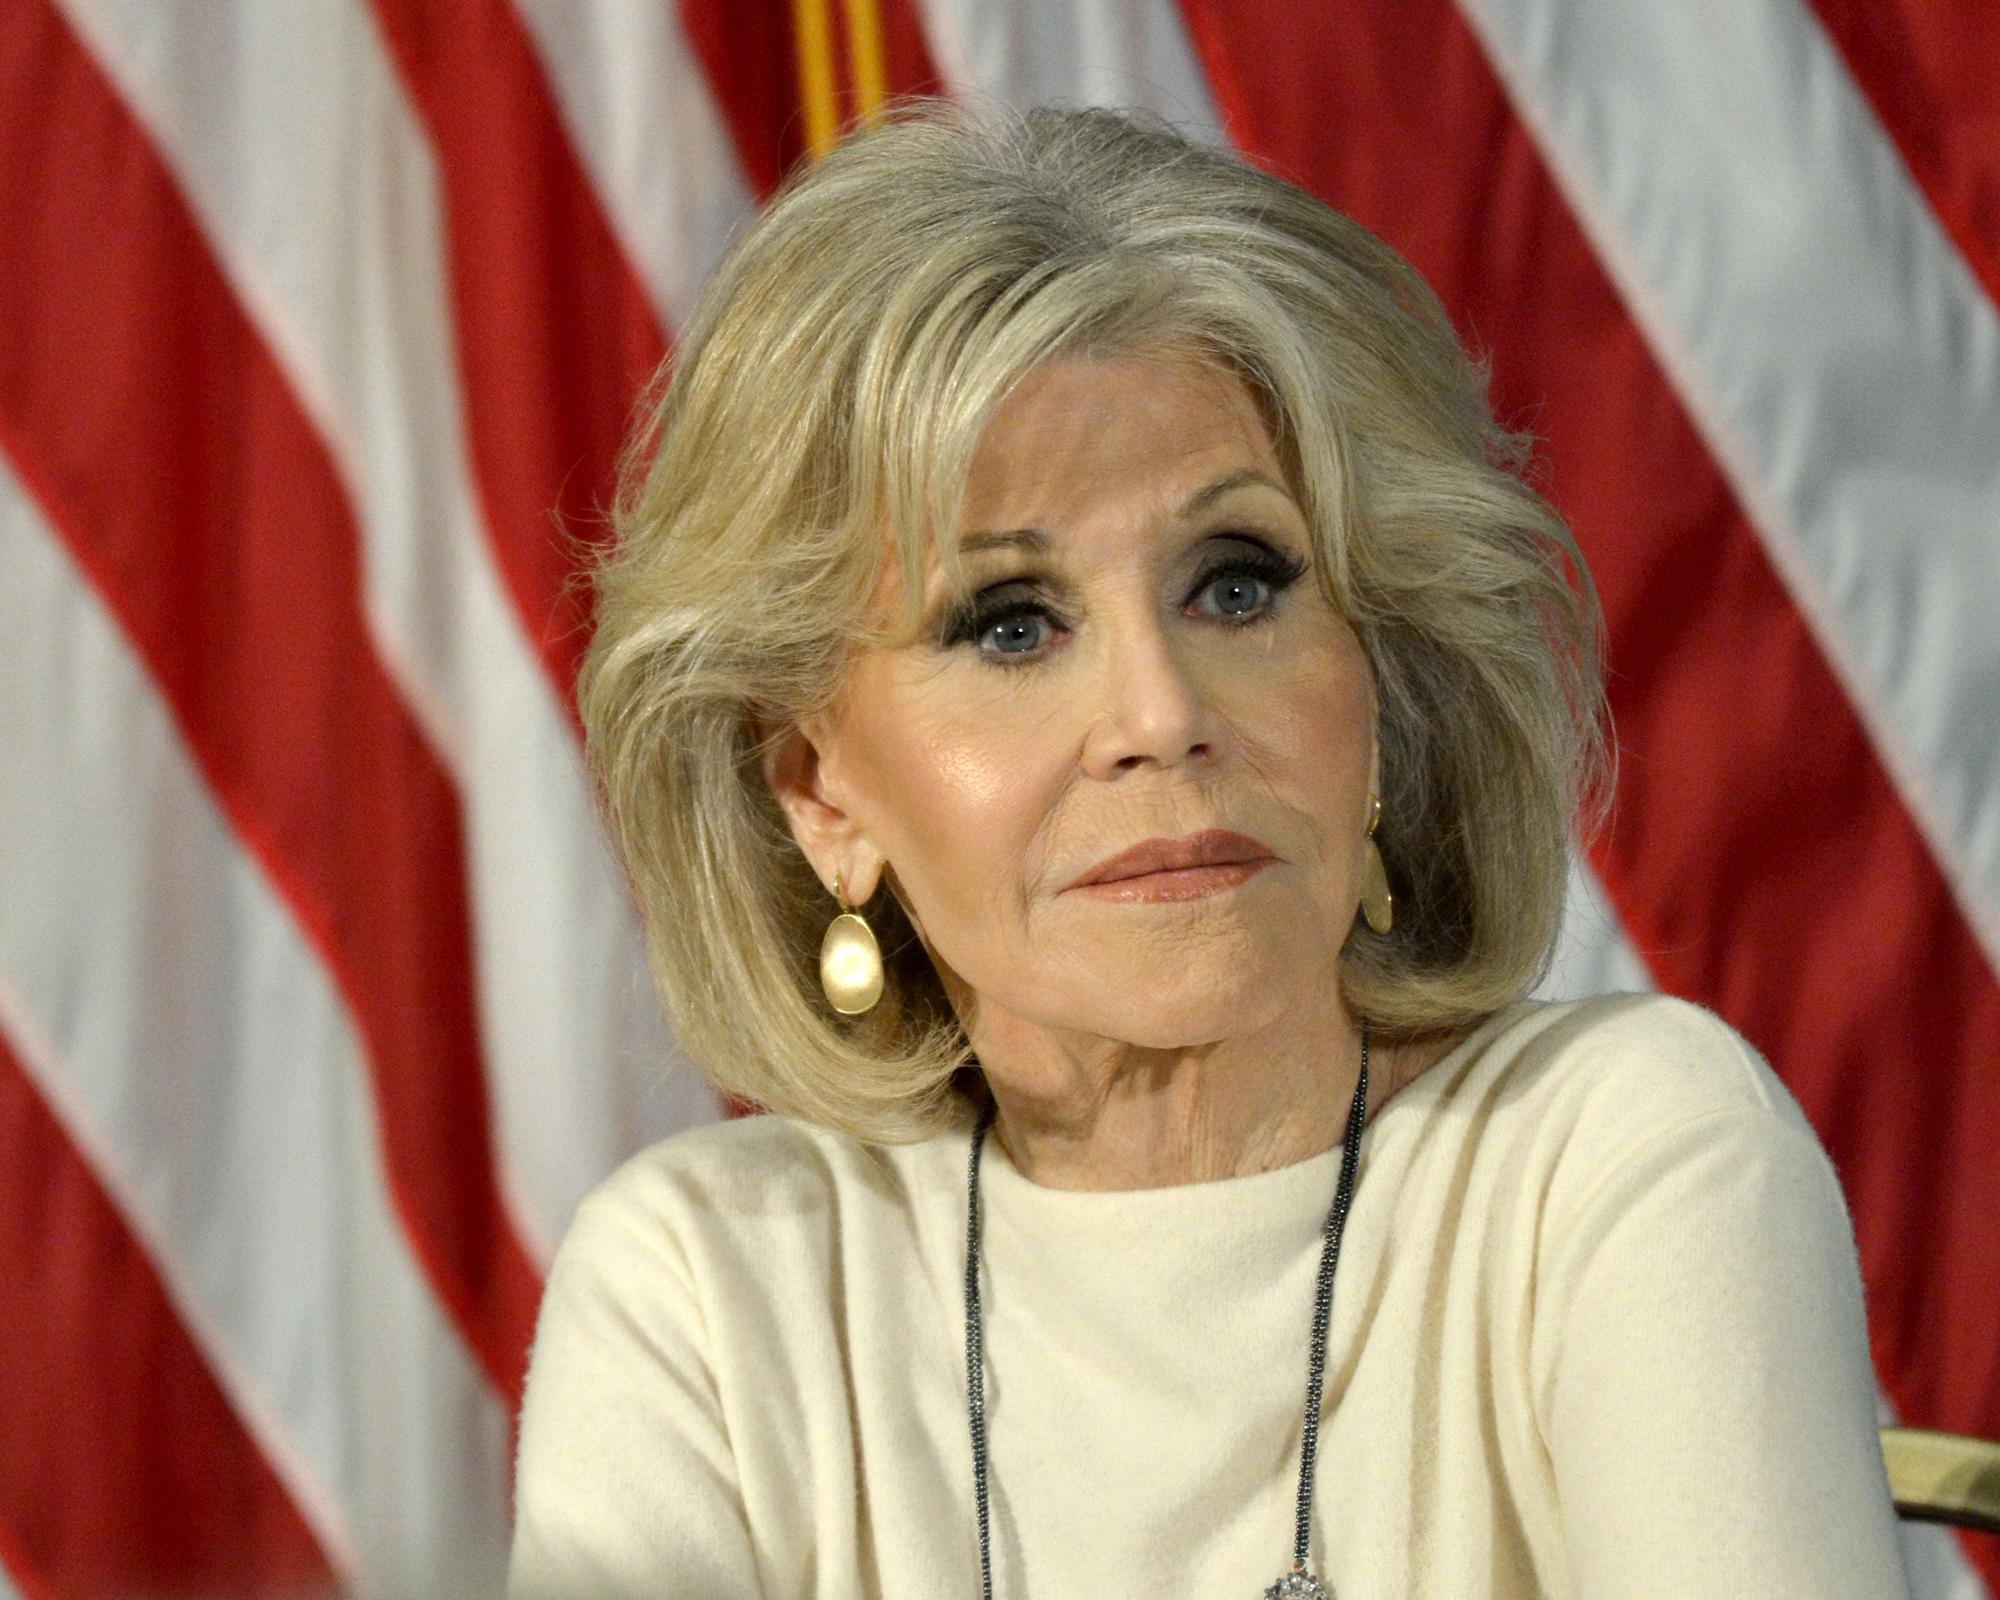 Jane Fonda on why celebrities should back political causes: 'When someone famous takes a stand, people notice'